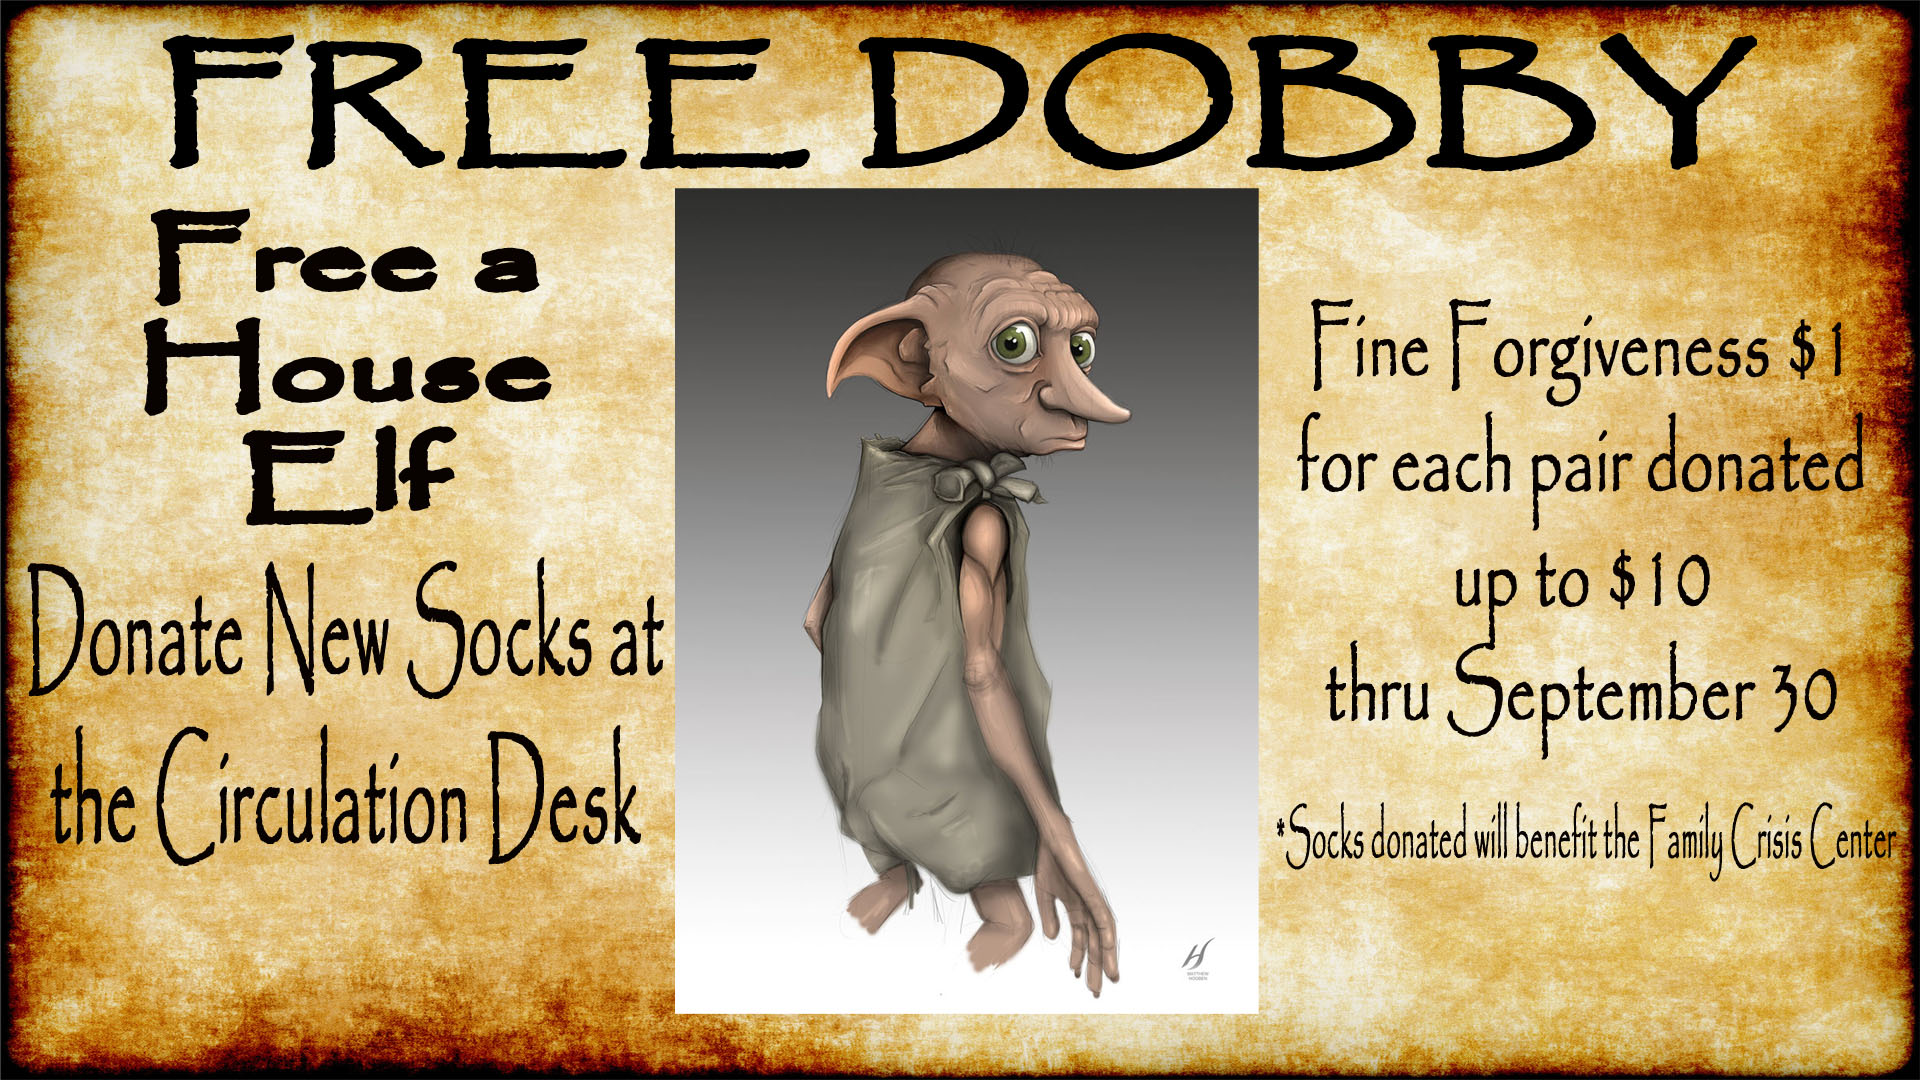 Save a House Elf